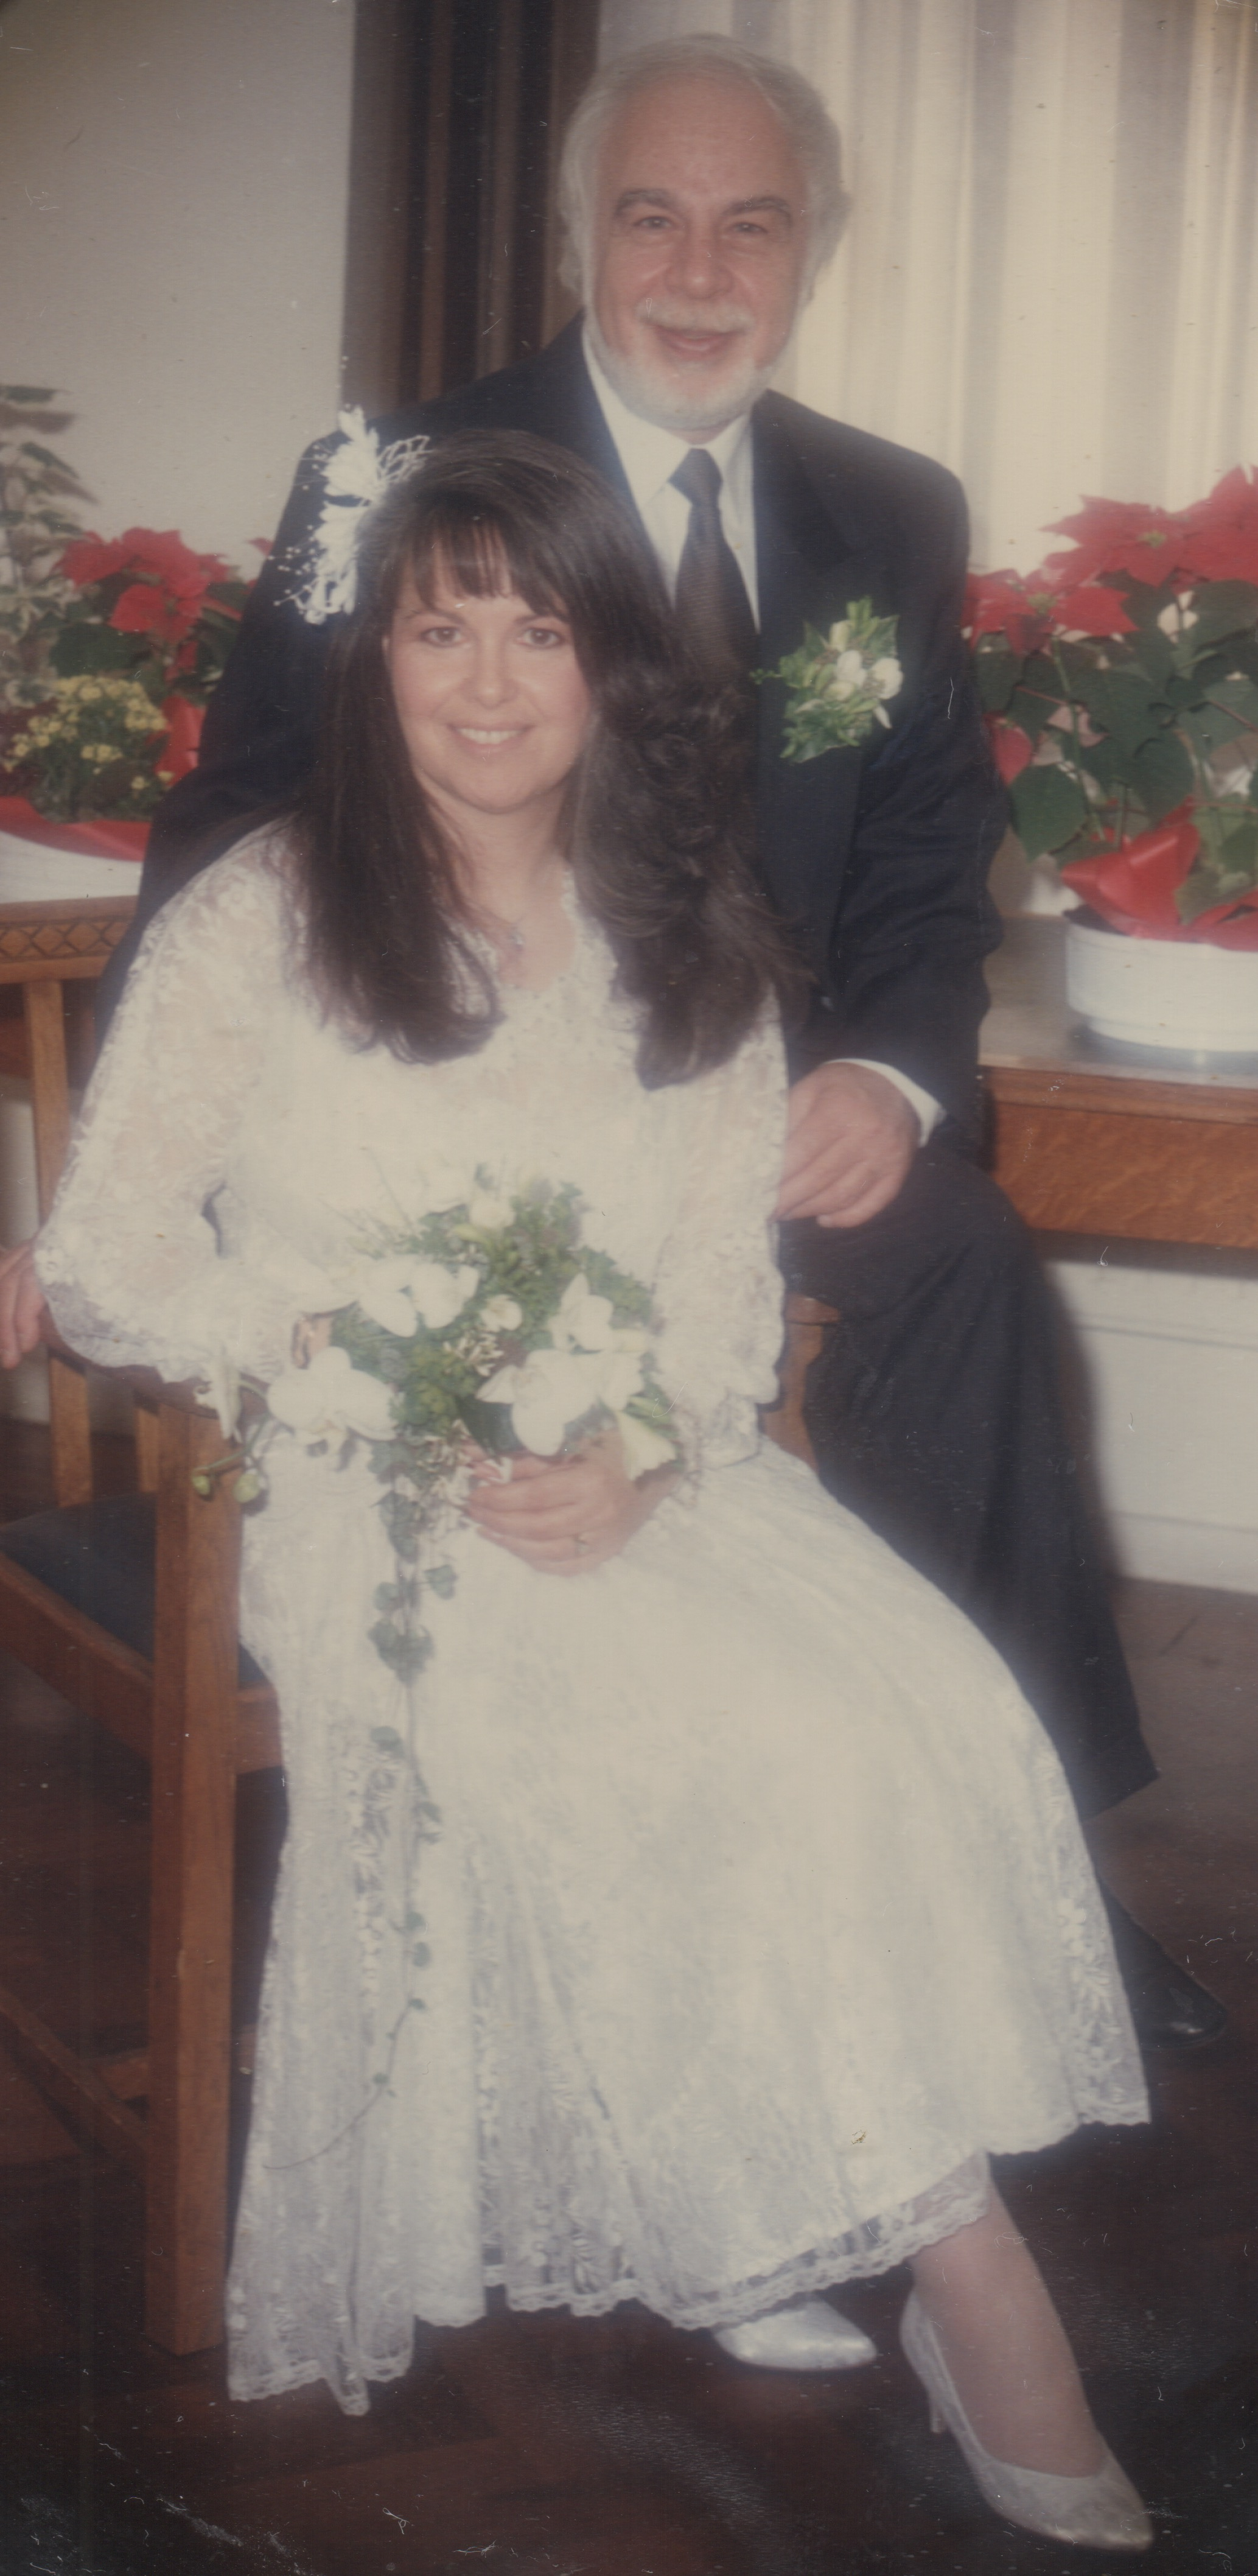 Wedding photo13 Dec 1990